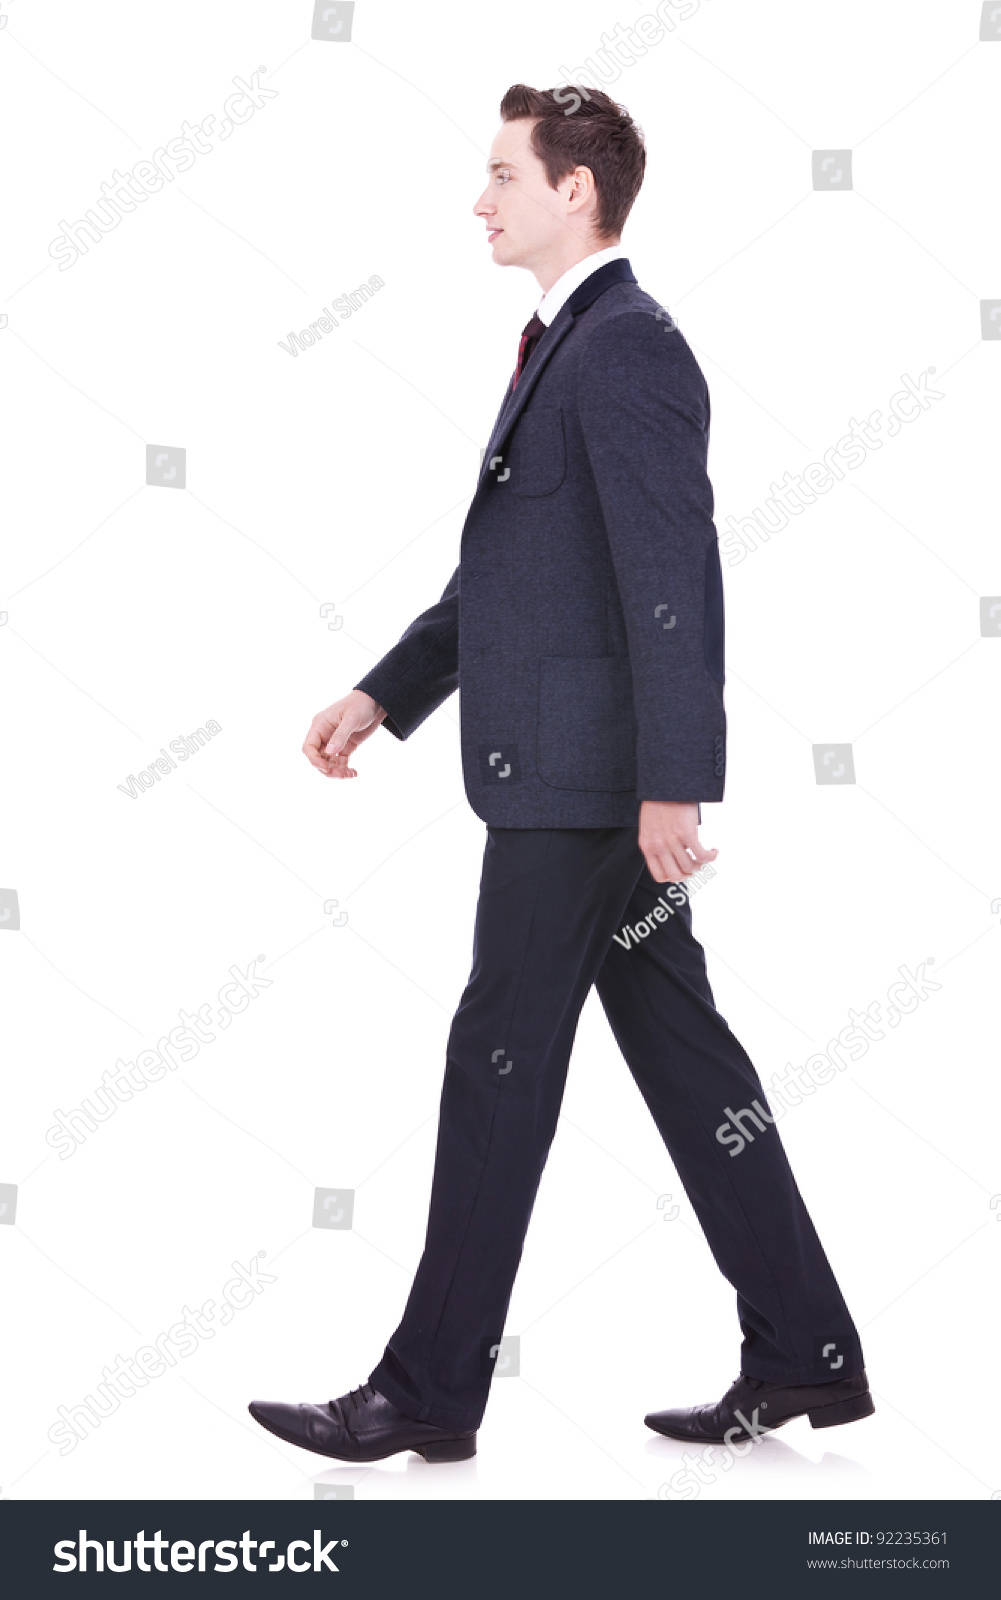 stock-photo-picture-of-a-young-business-man-walking-forward-side-view-92235361.jpg